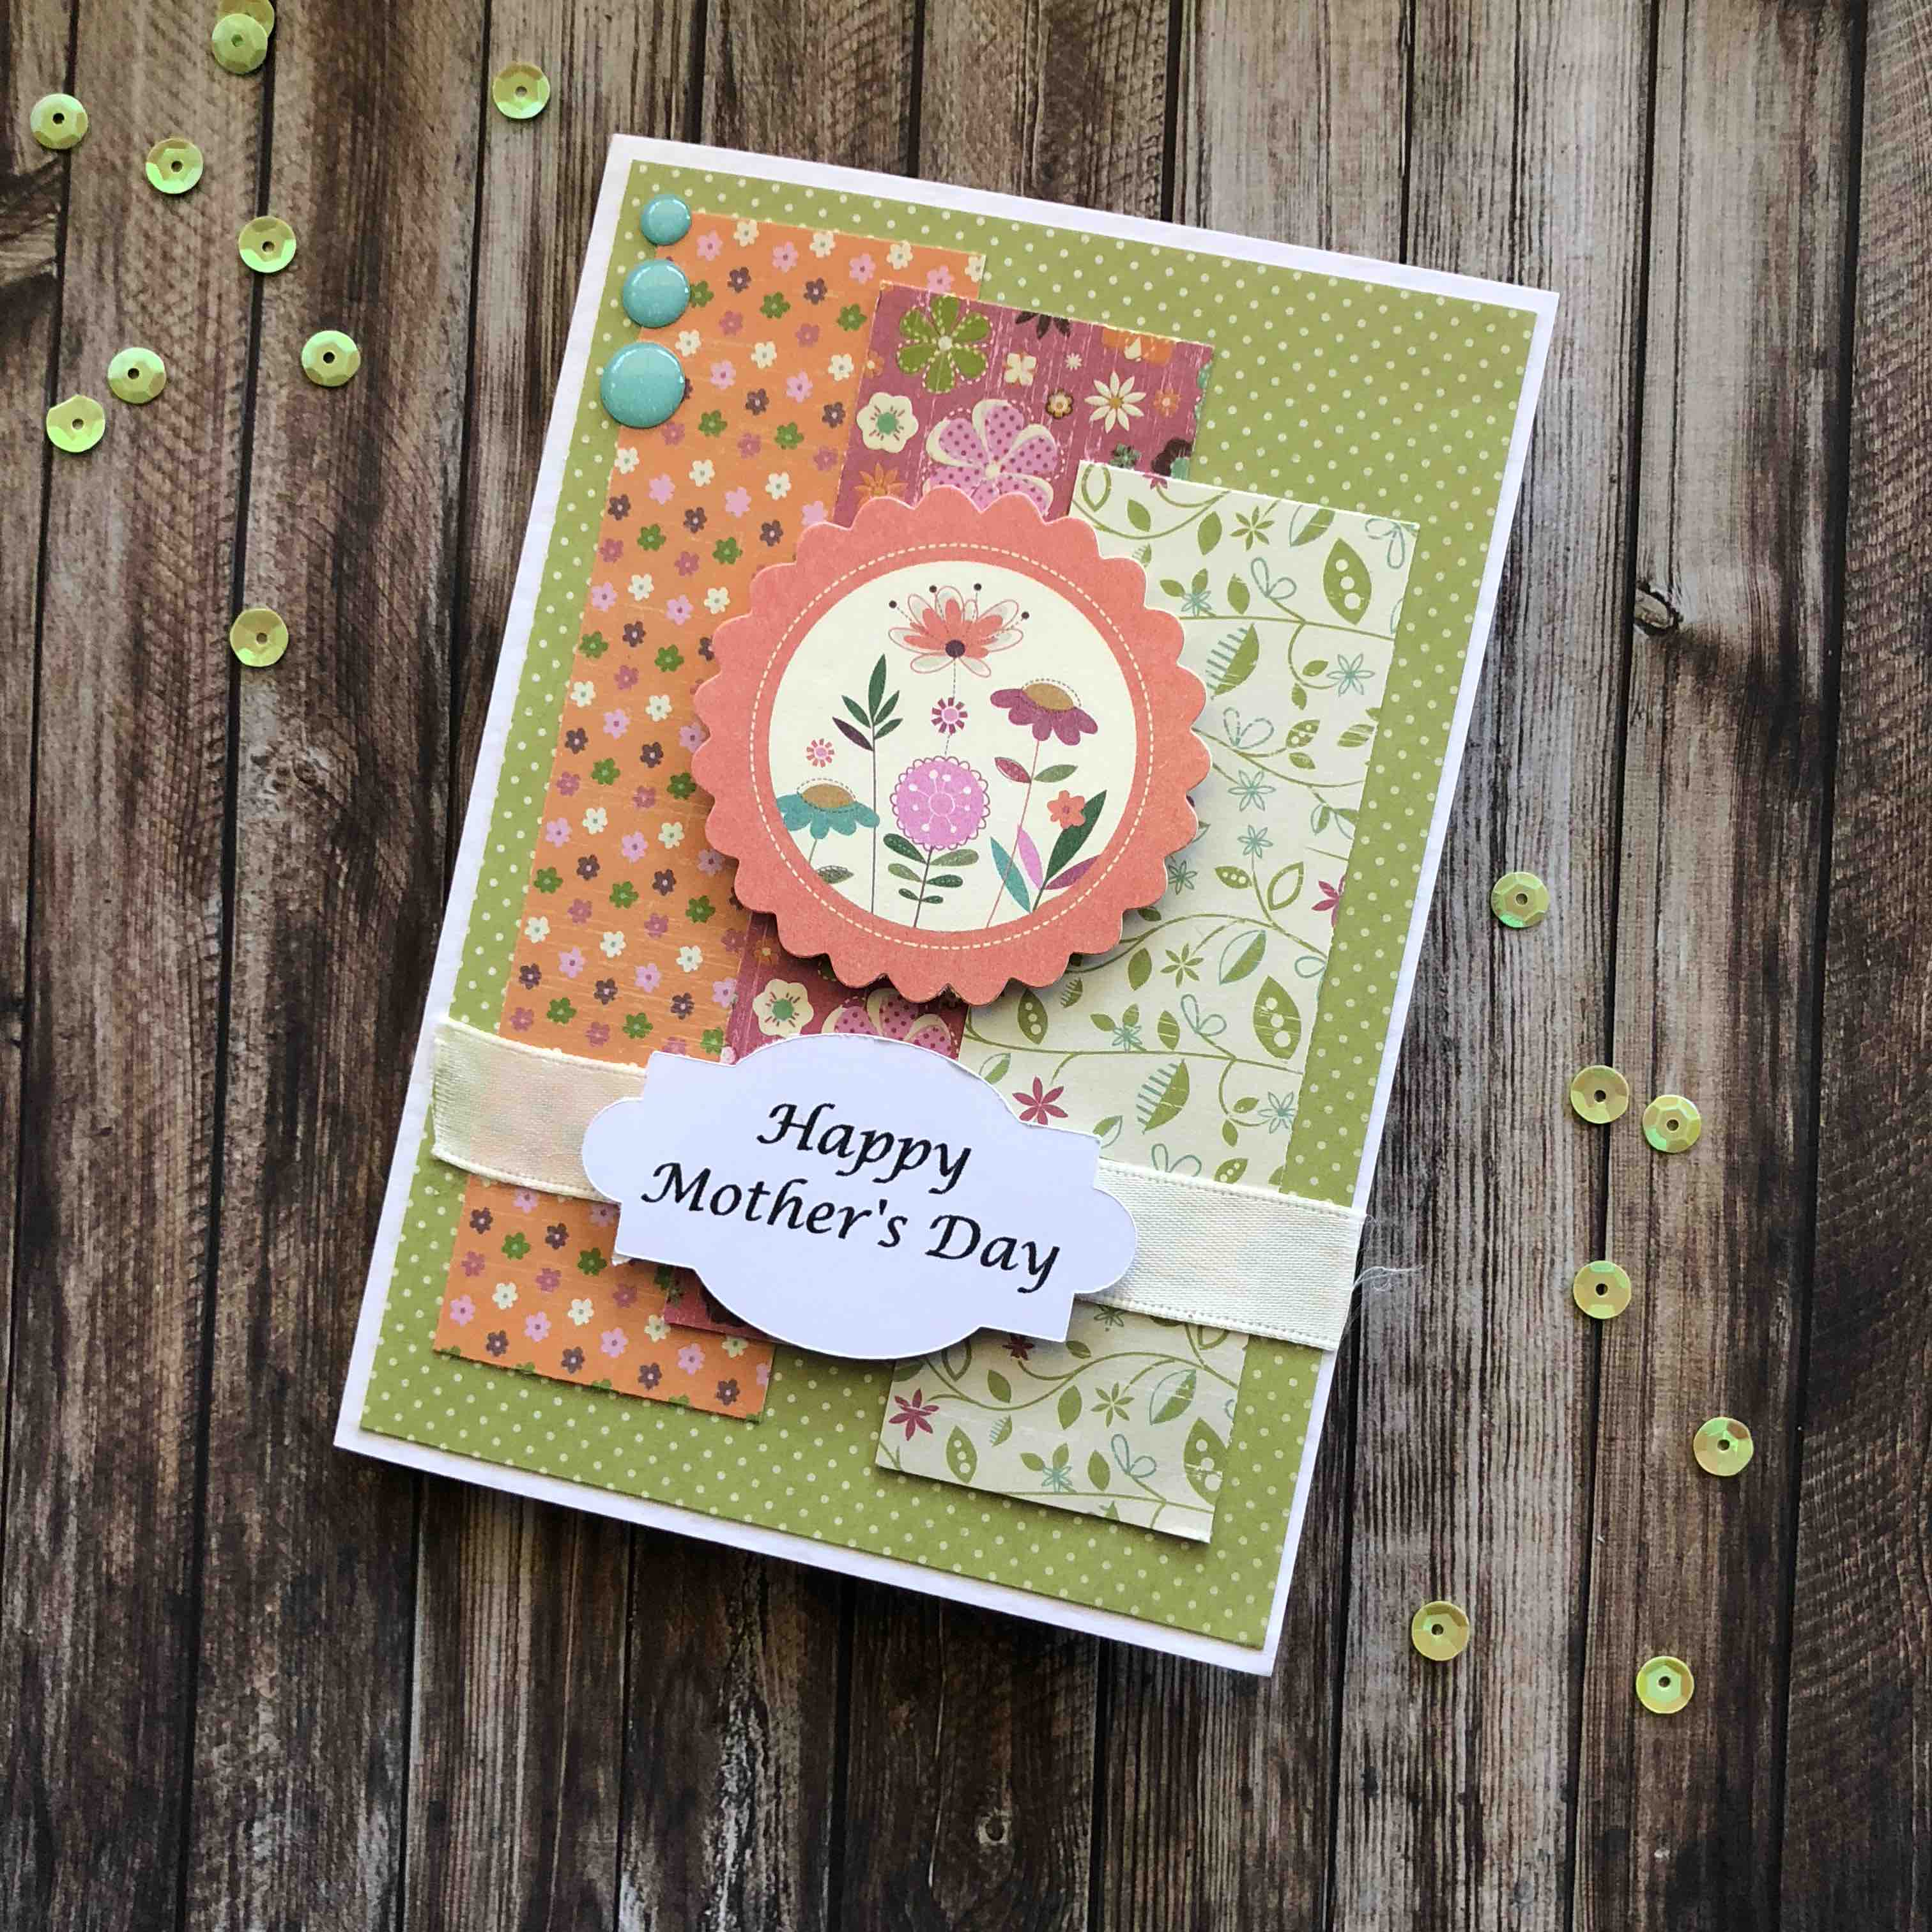 mothers day card crafted - HD3024×3024